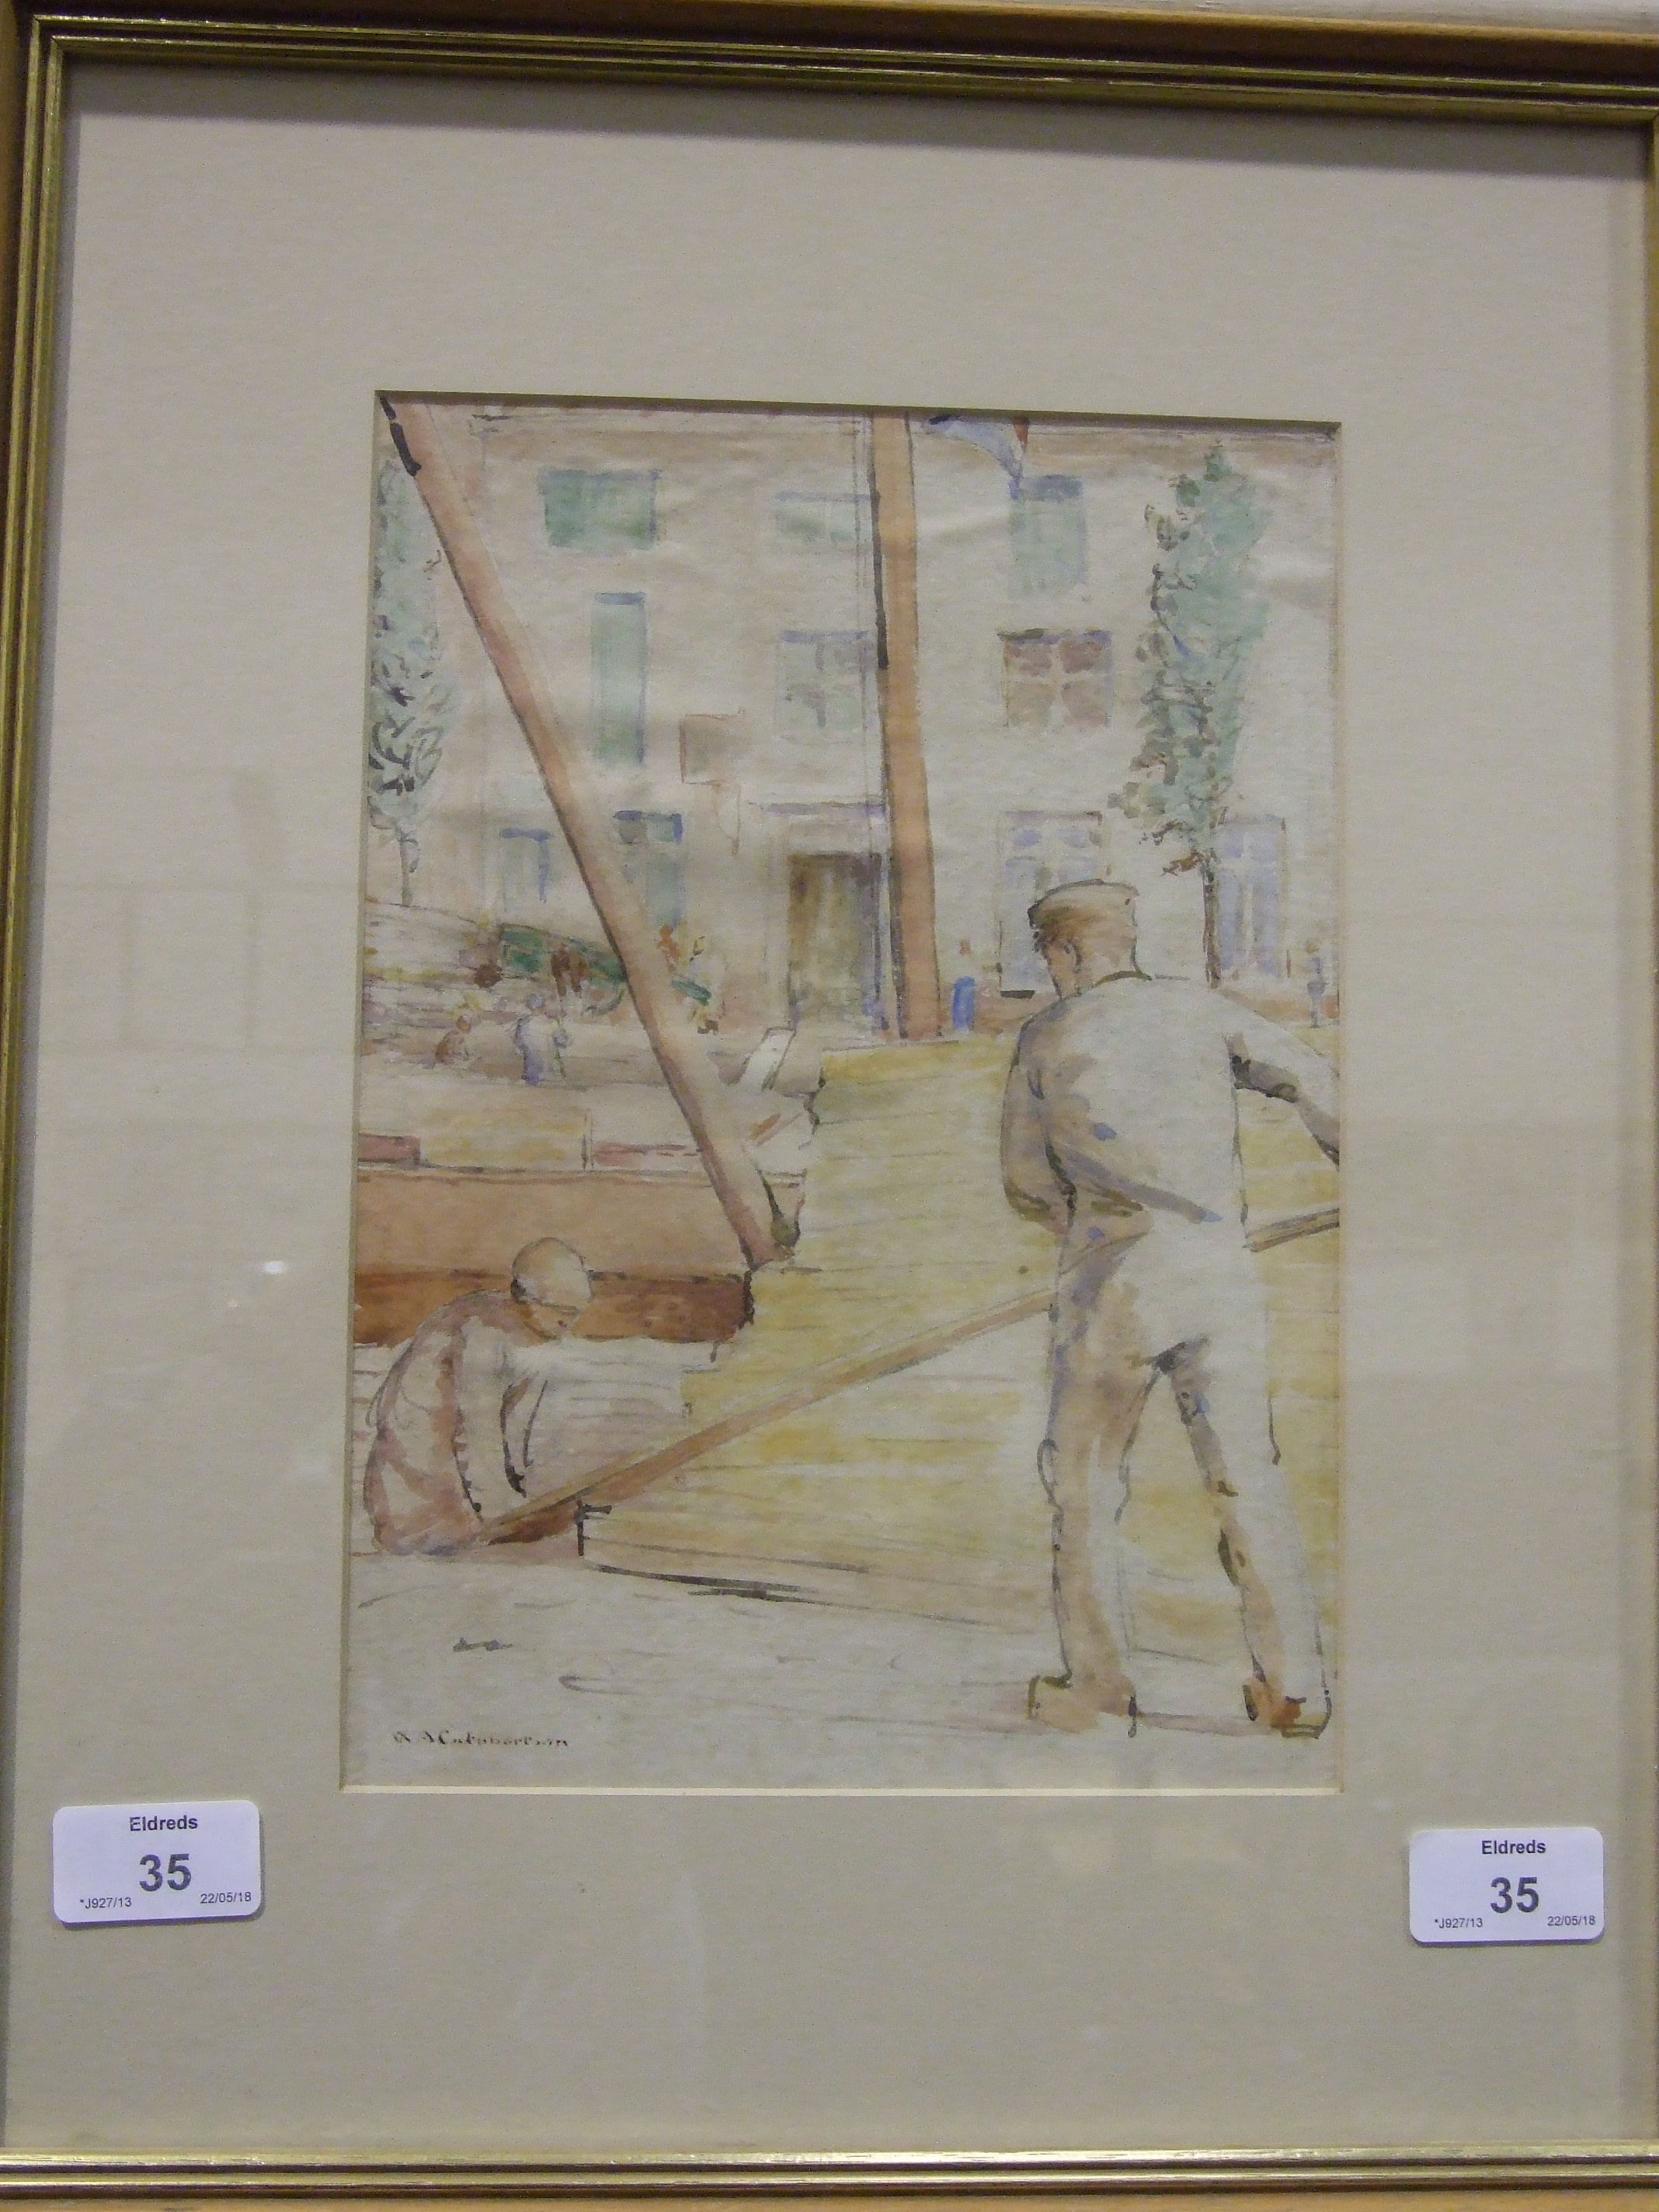 W A Cuthbertson STUDY OF WORKMEN HANDLING PLANKS OF WOOD Signed watercolour, 27 x 19cm. - Image 2 of 2